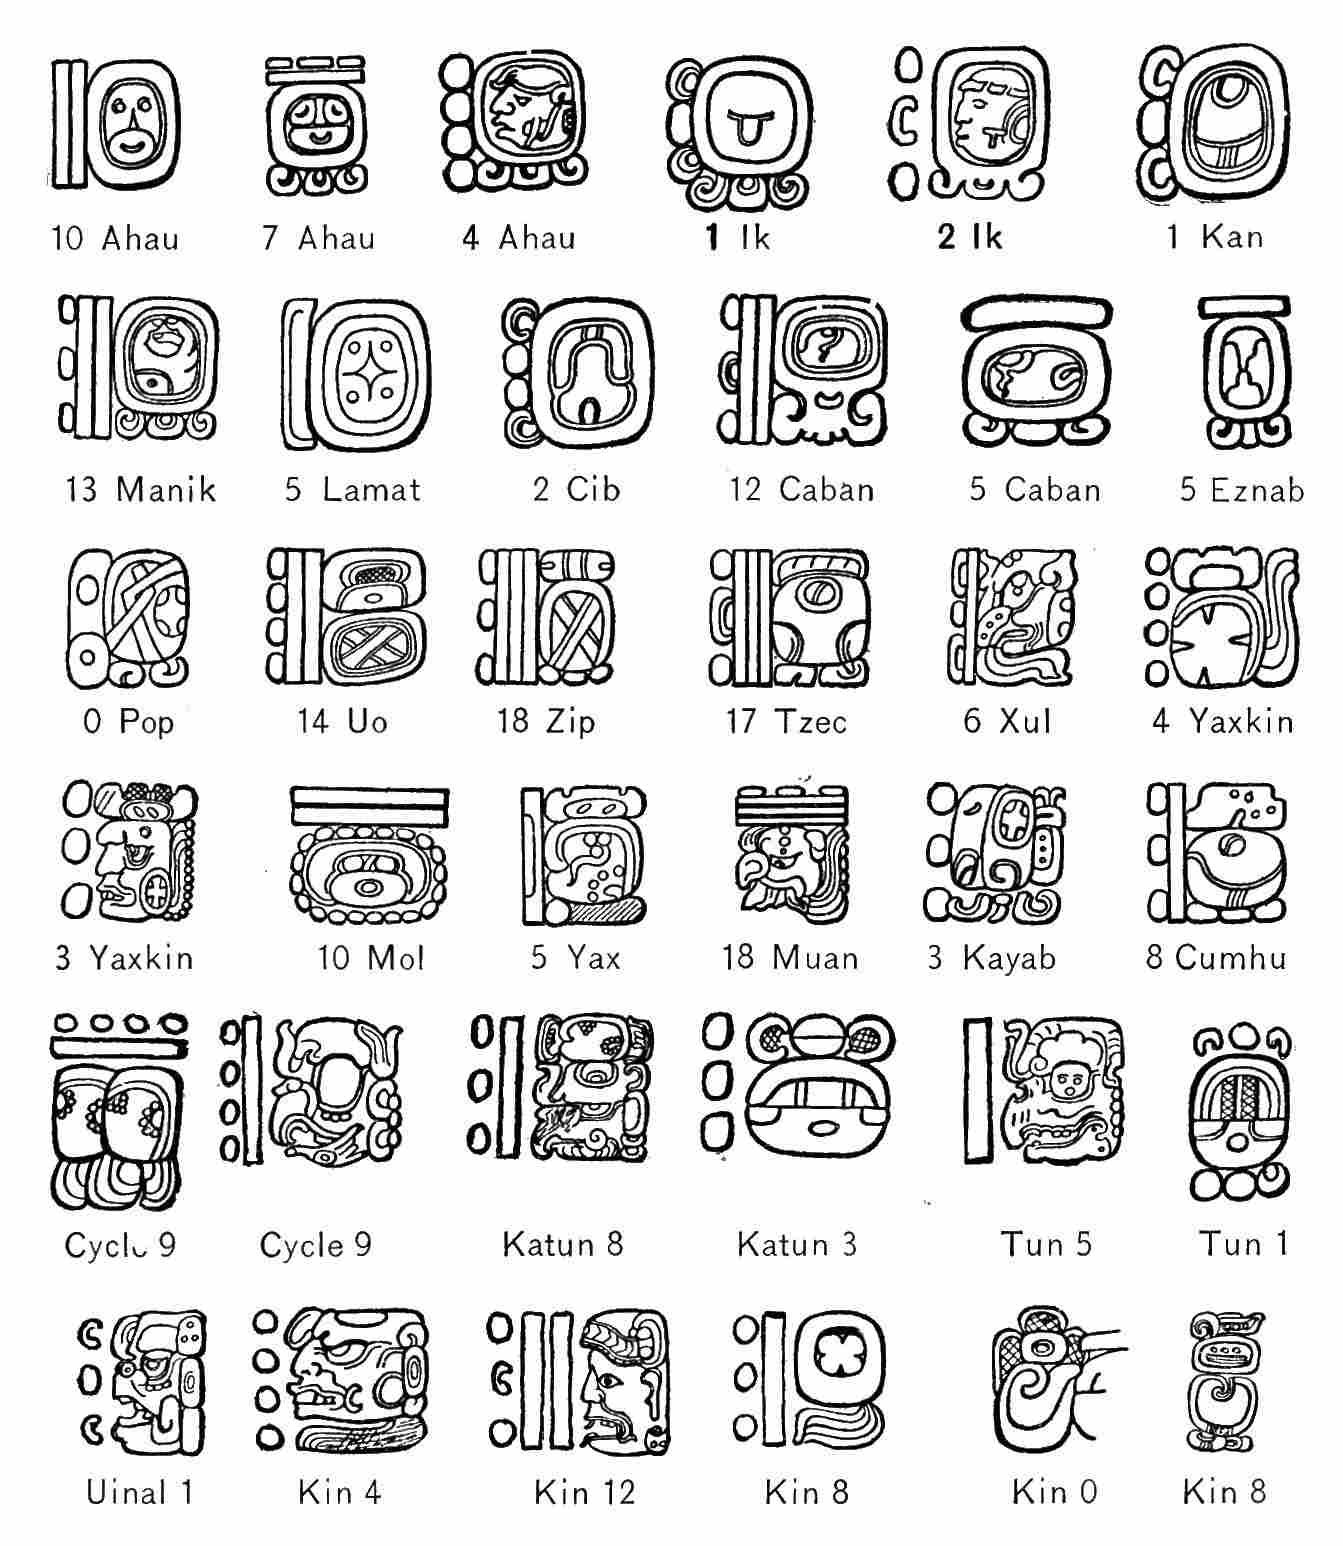 Mayan symbols and meanings mayan pinterest mayan symbols mayan symbols and meanings biocorpaavc